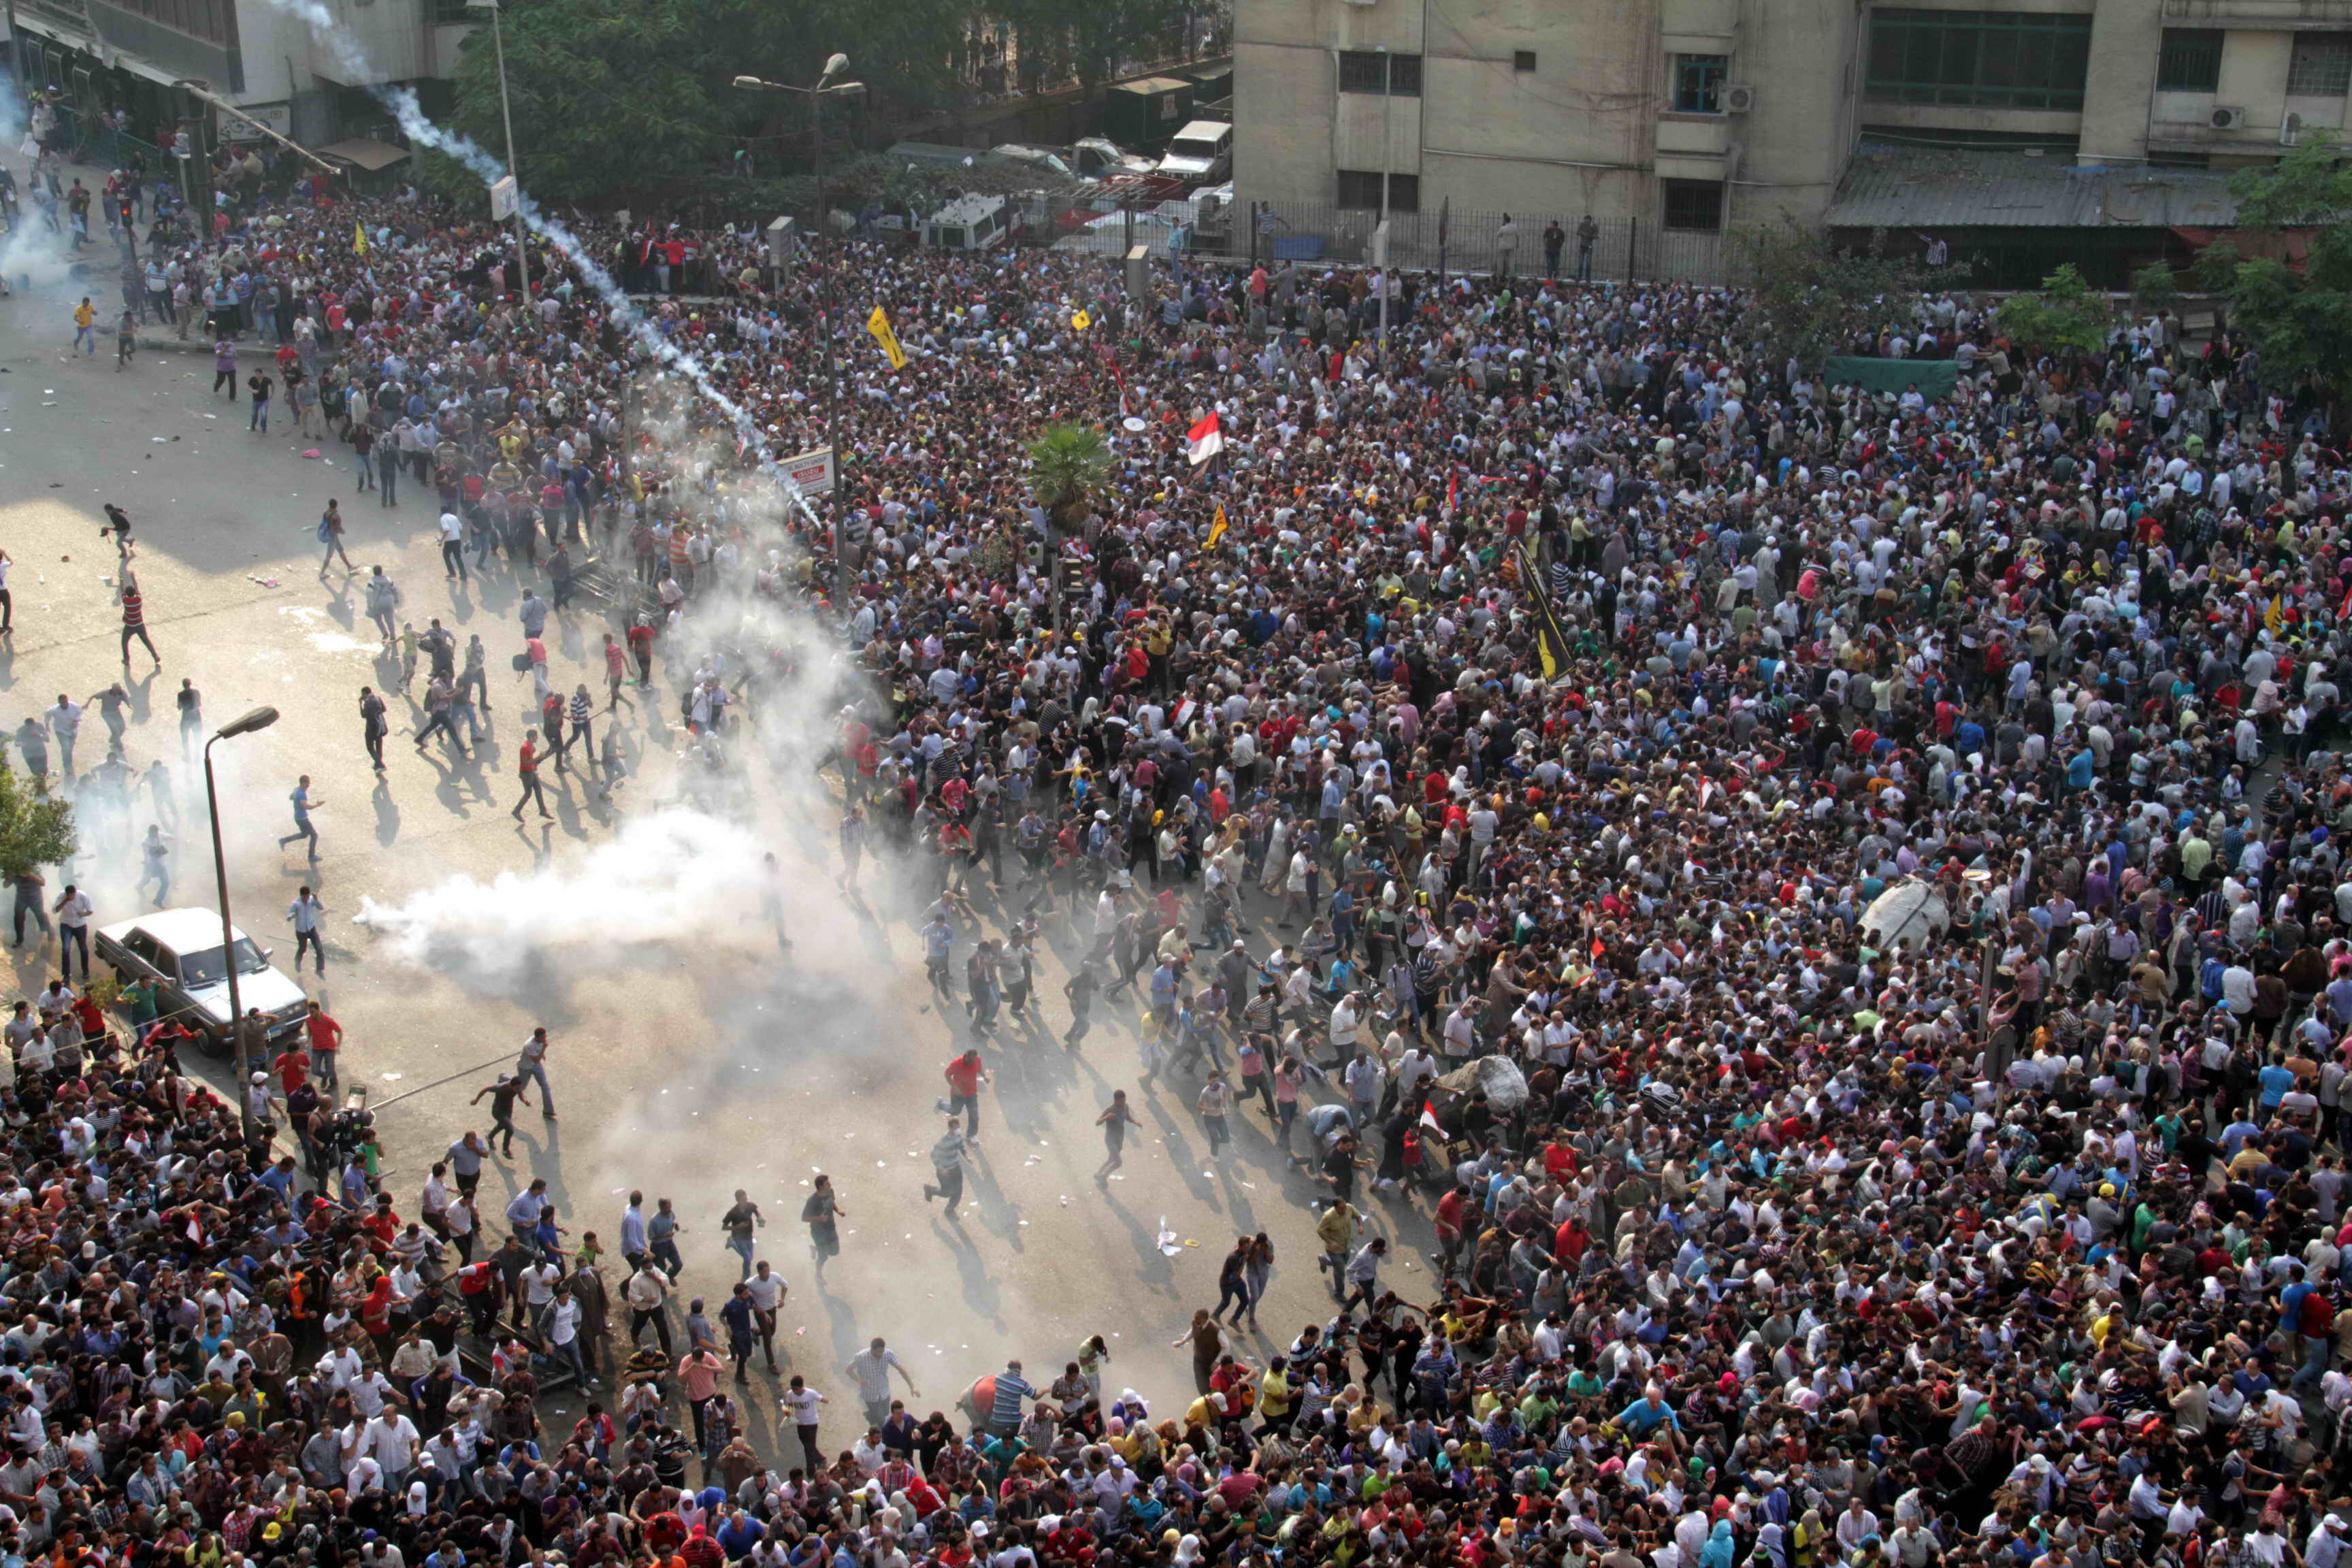 Clashes erupted in Ramses Square between Morsi supporters and security forces (Photo by Mohamed Omar/DNE)